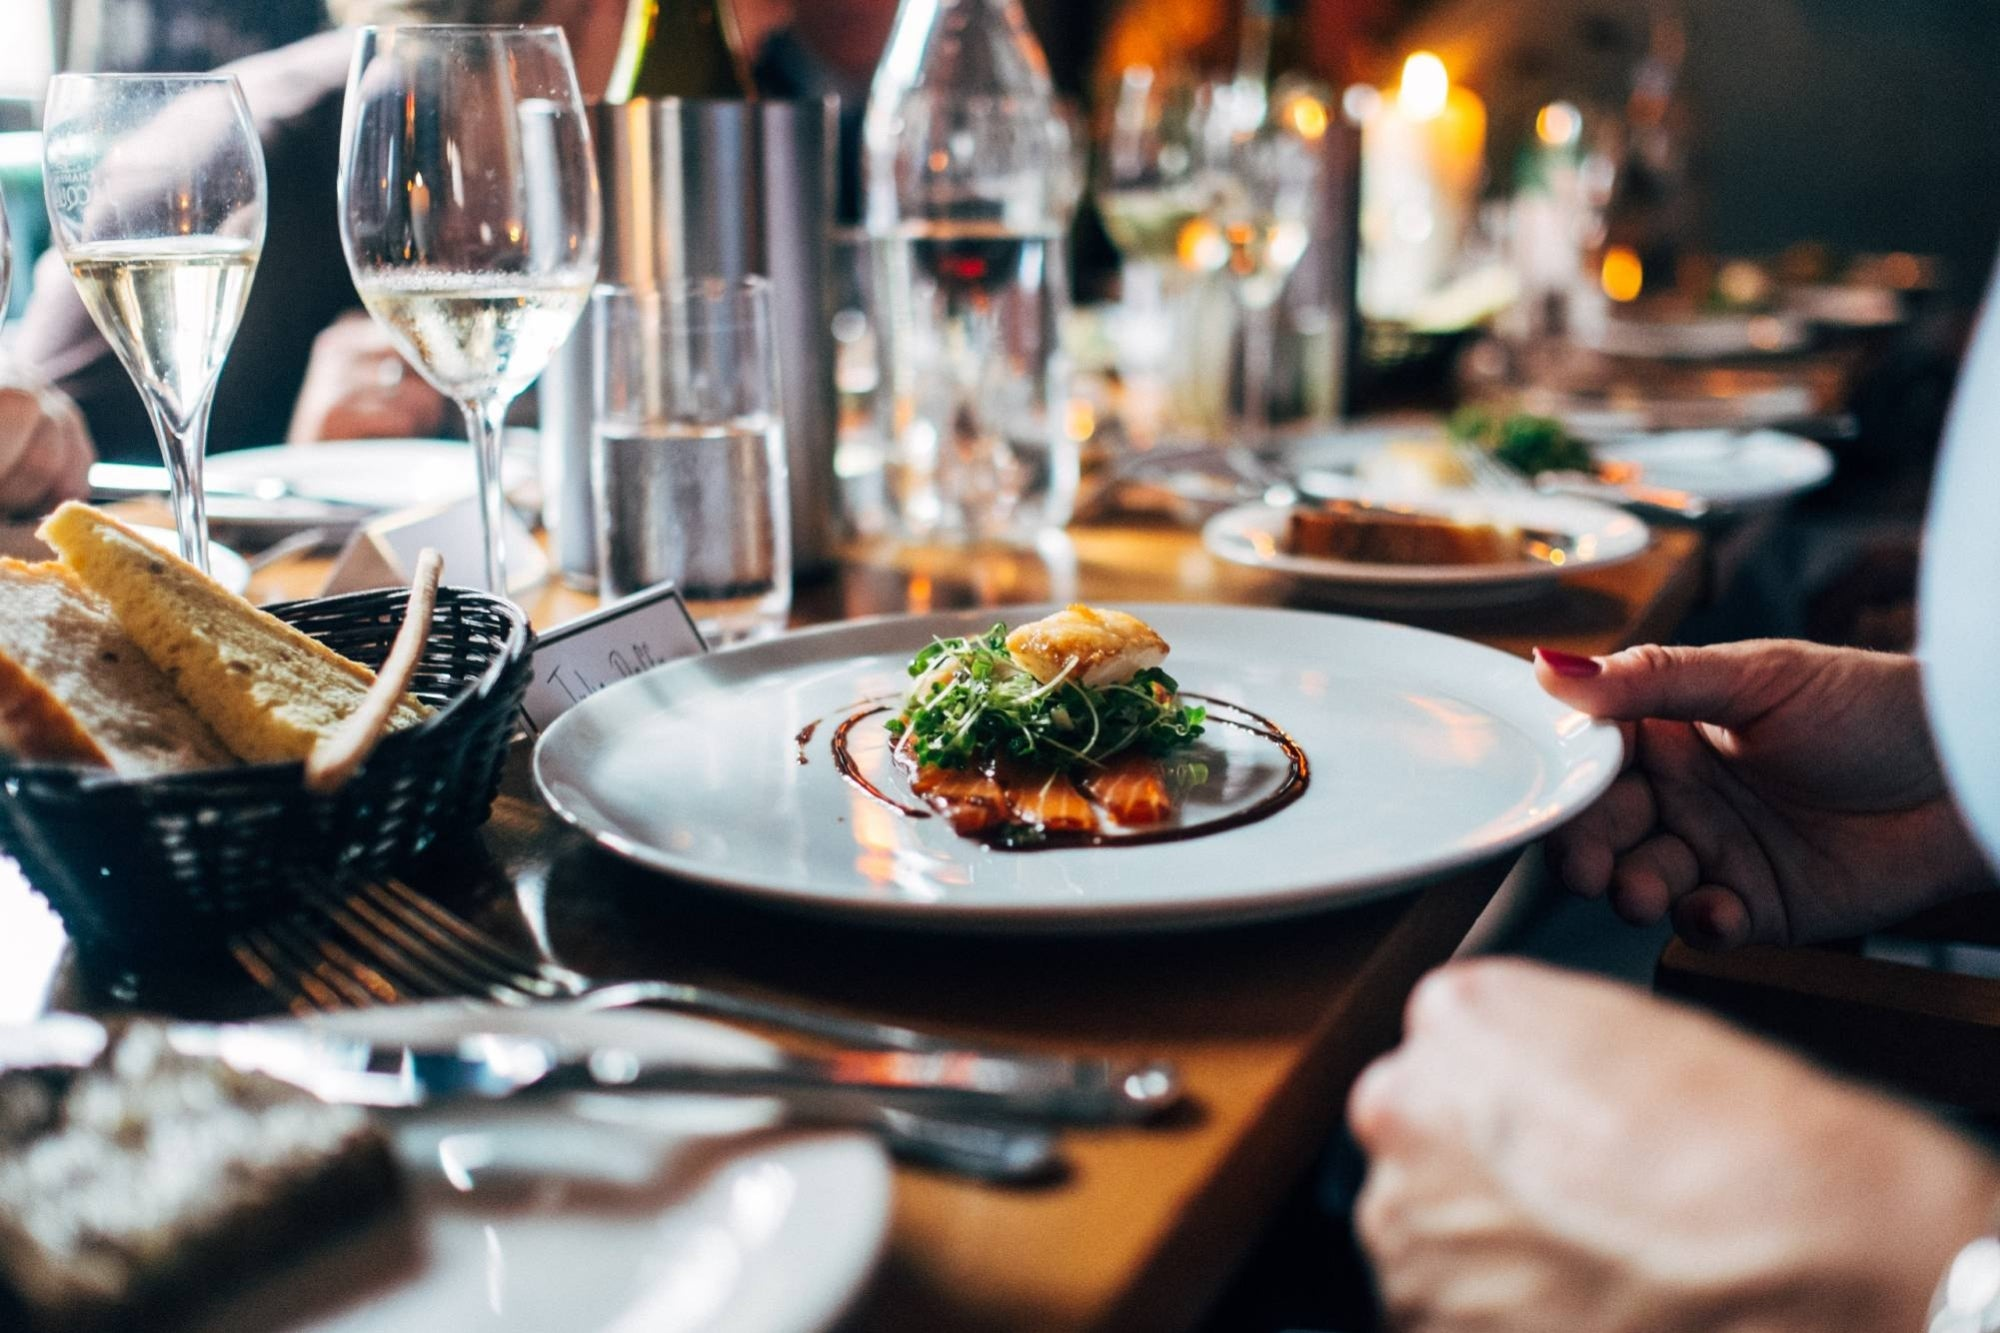 Here's what restaurants need to take advantage of digitization